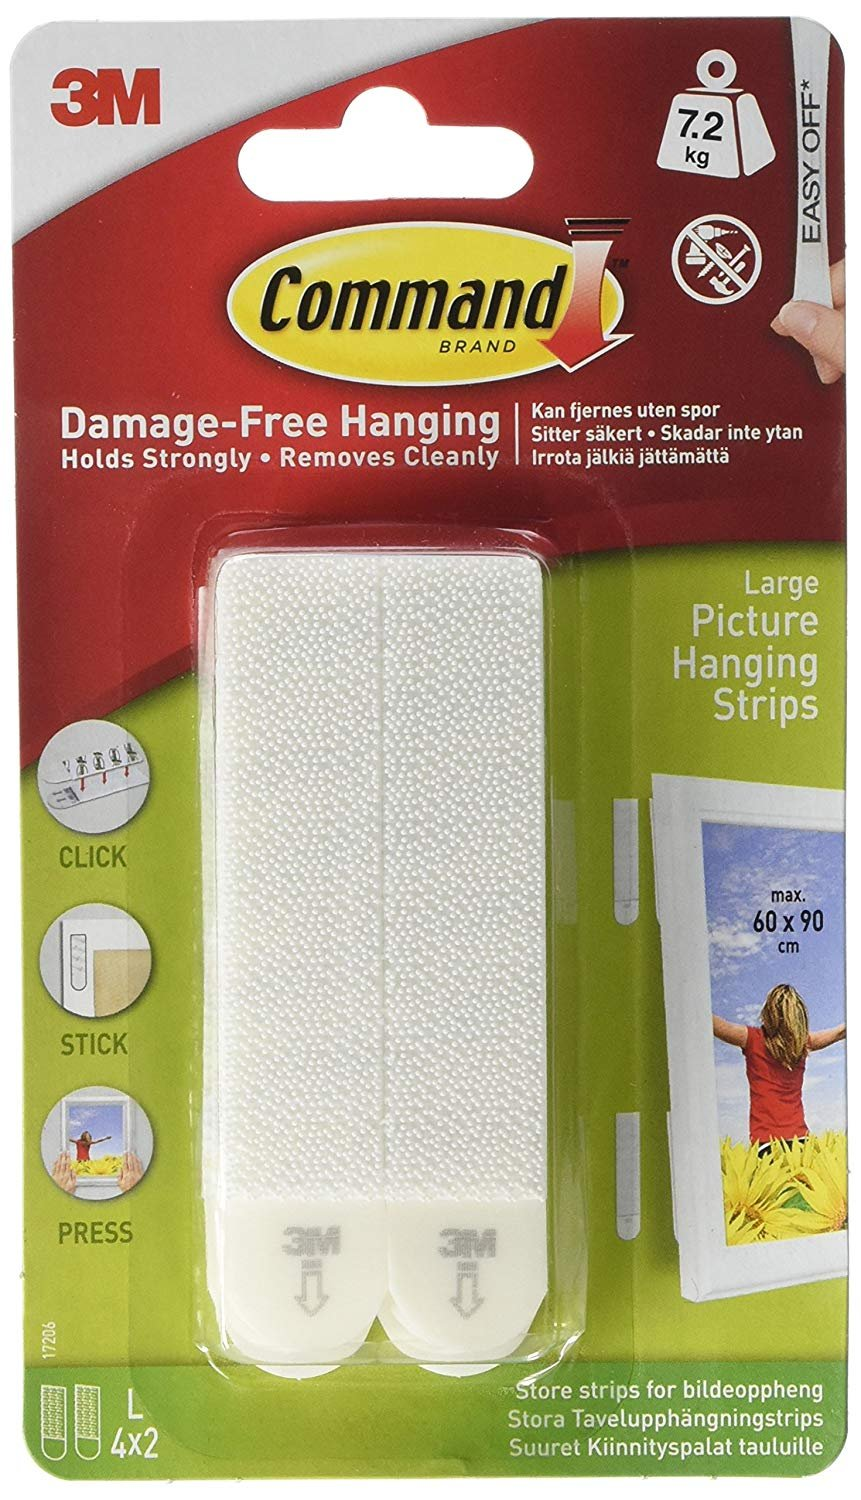 Command 3M Picture & Frame Hanging Strips Sets Large Size White Damage-Free, 60-Pair